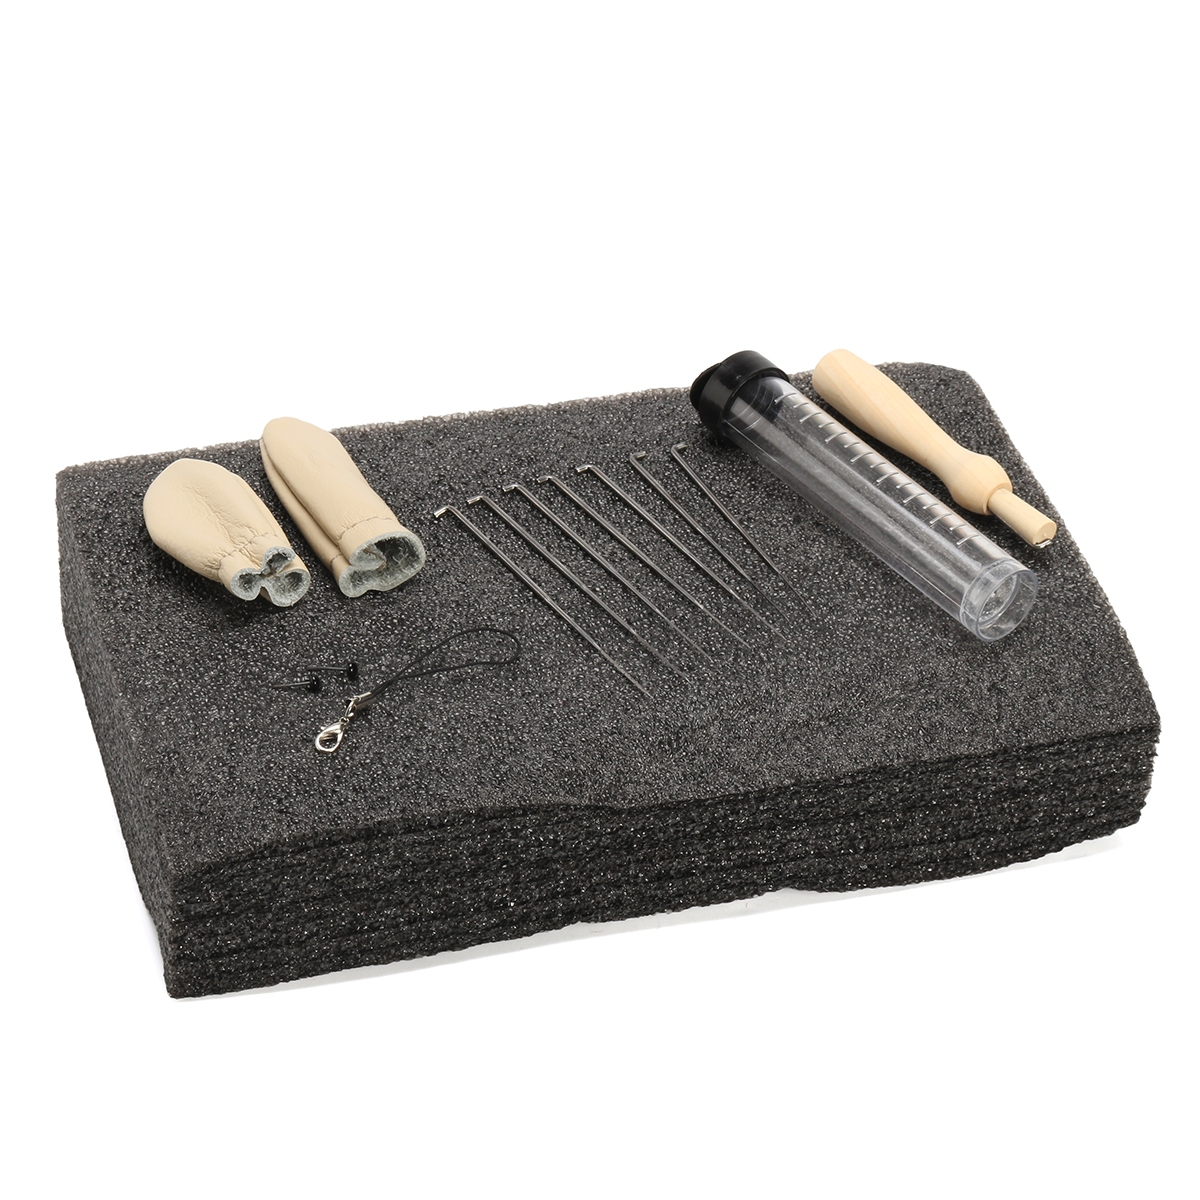 Needle Felting Foam Starter Kit Wool Felt Tools Mat + Needles + Craft Accessories Set